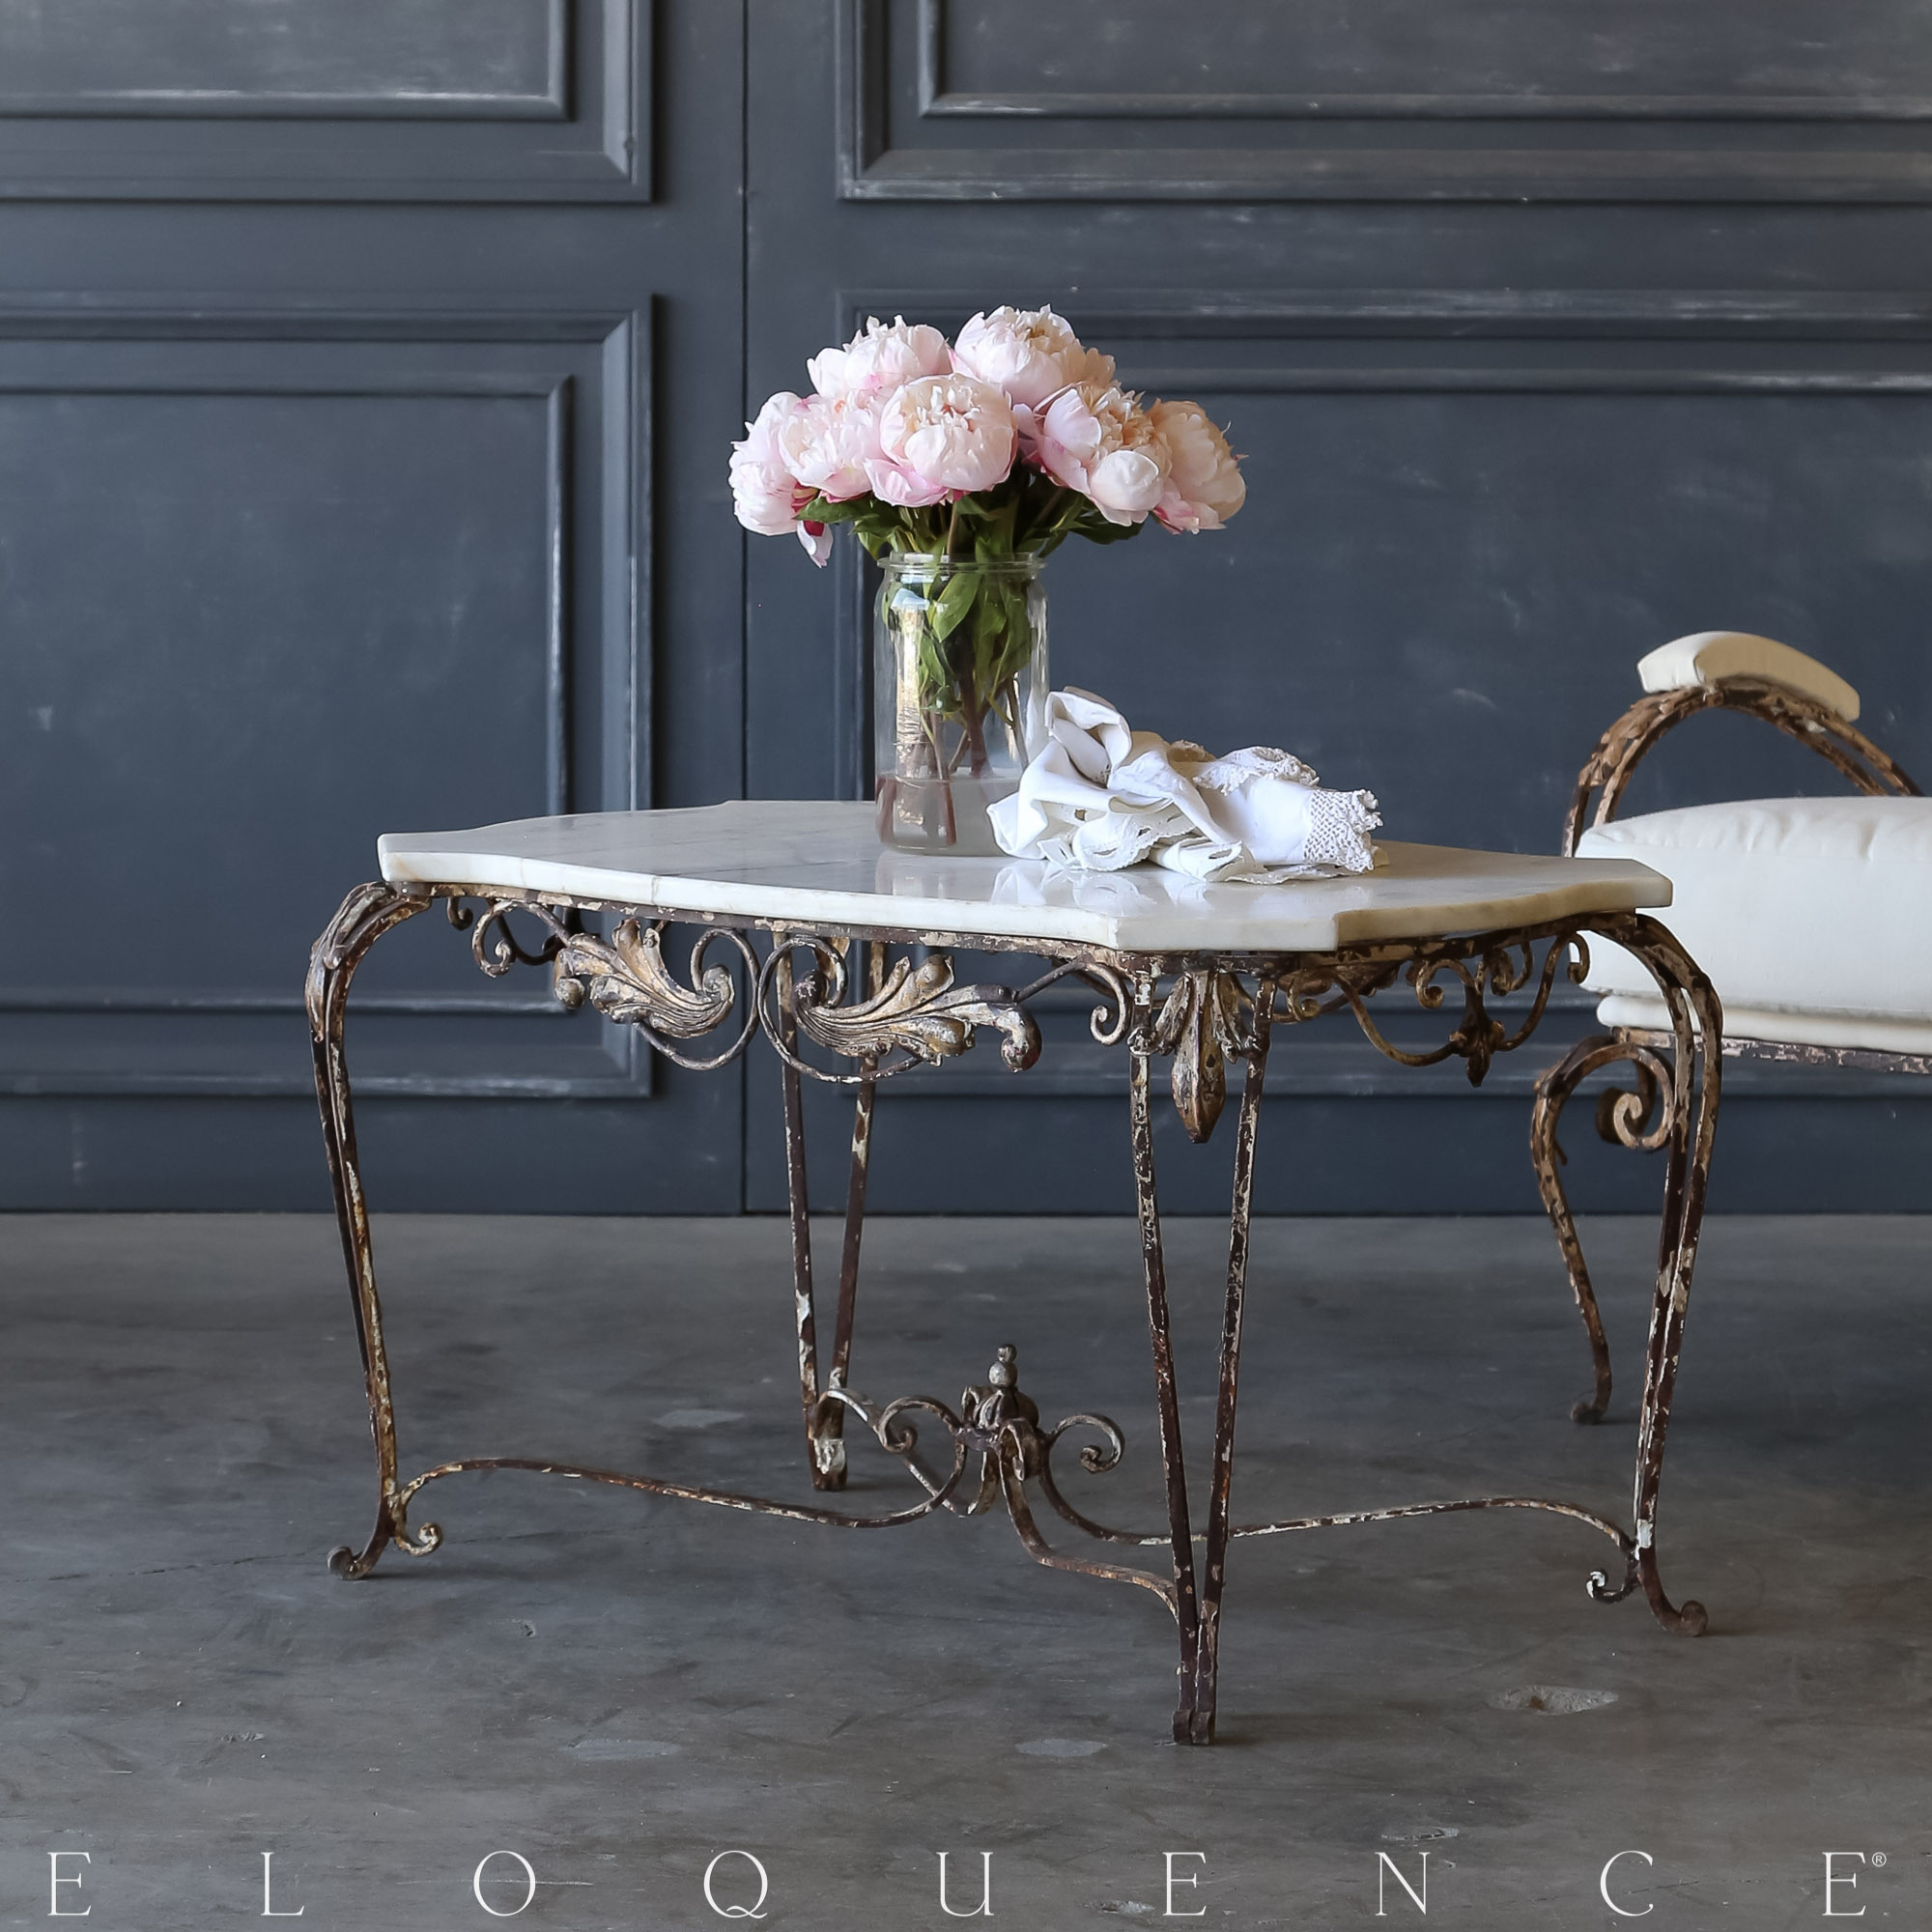 Eloquence® Vintage Steel Garden Coffee Table: 1940